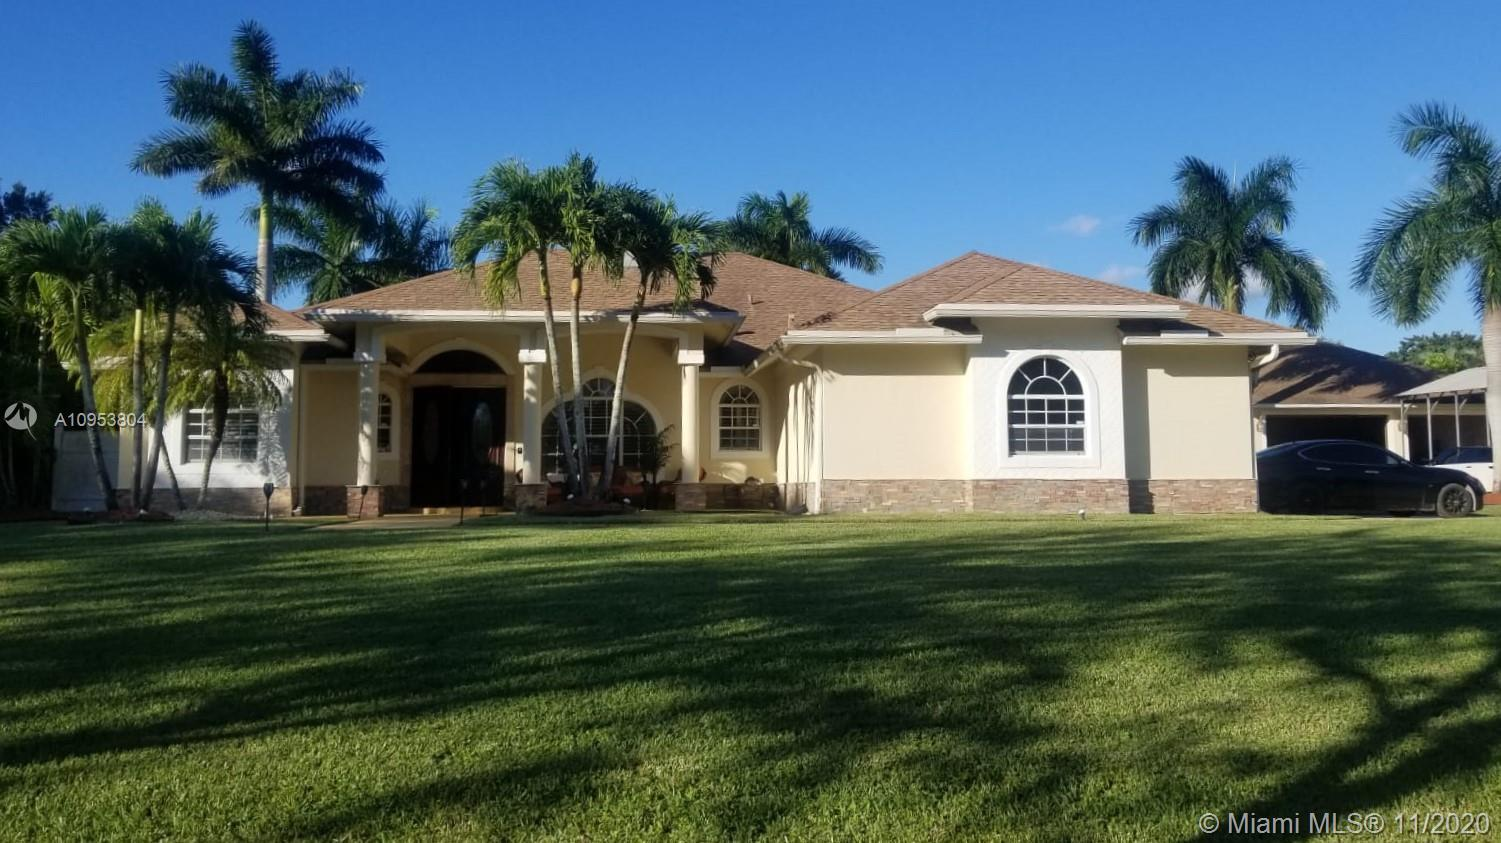 This gorgeous Acreage home with over 2,600 sqft is ideal for families looking to spread out, relax,